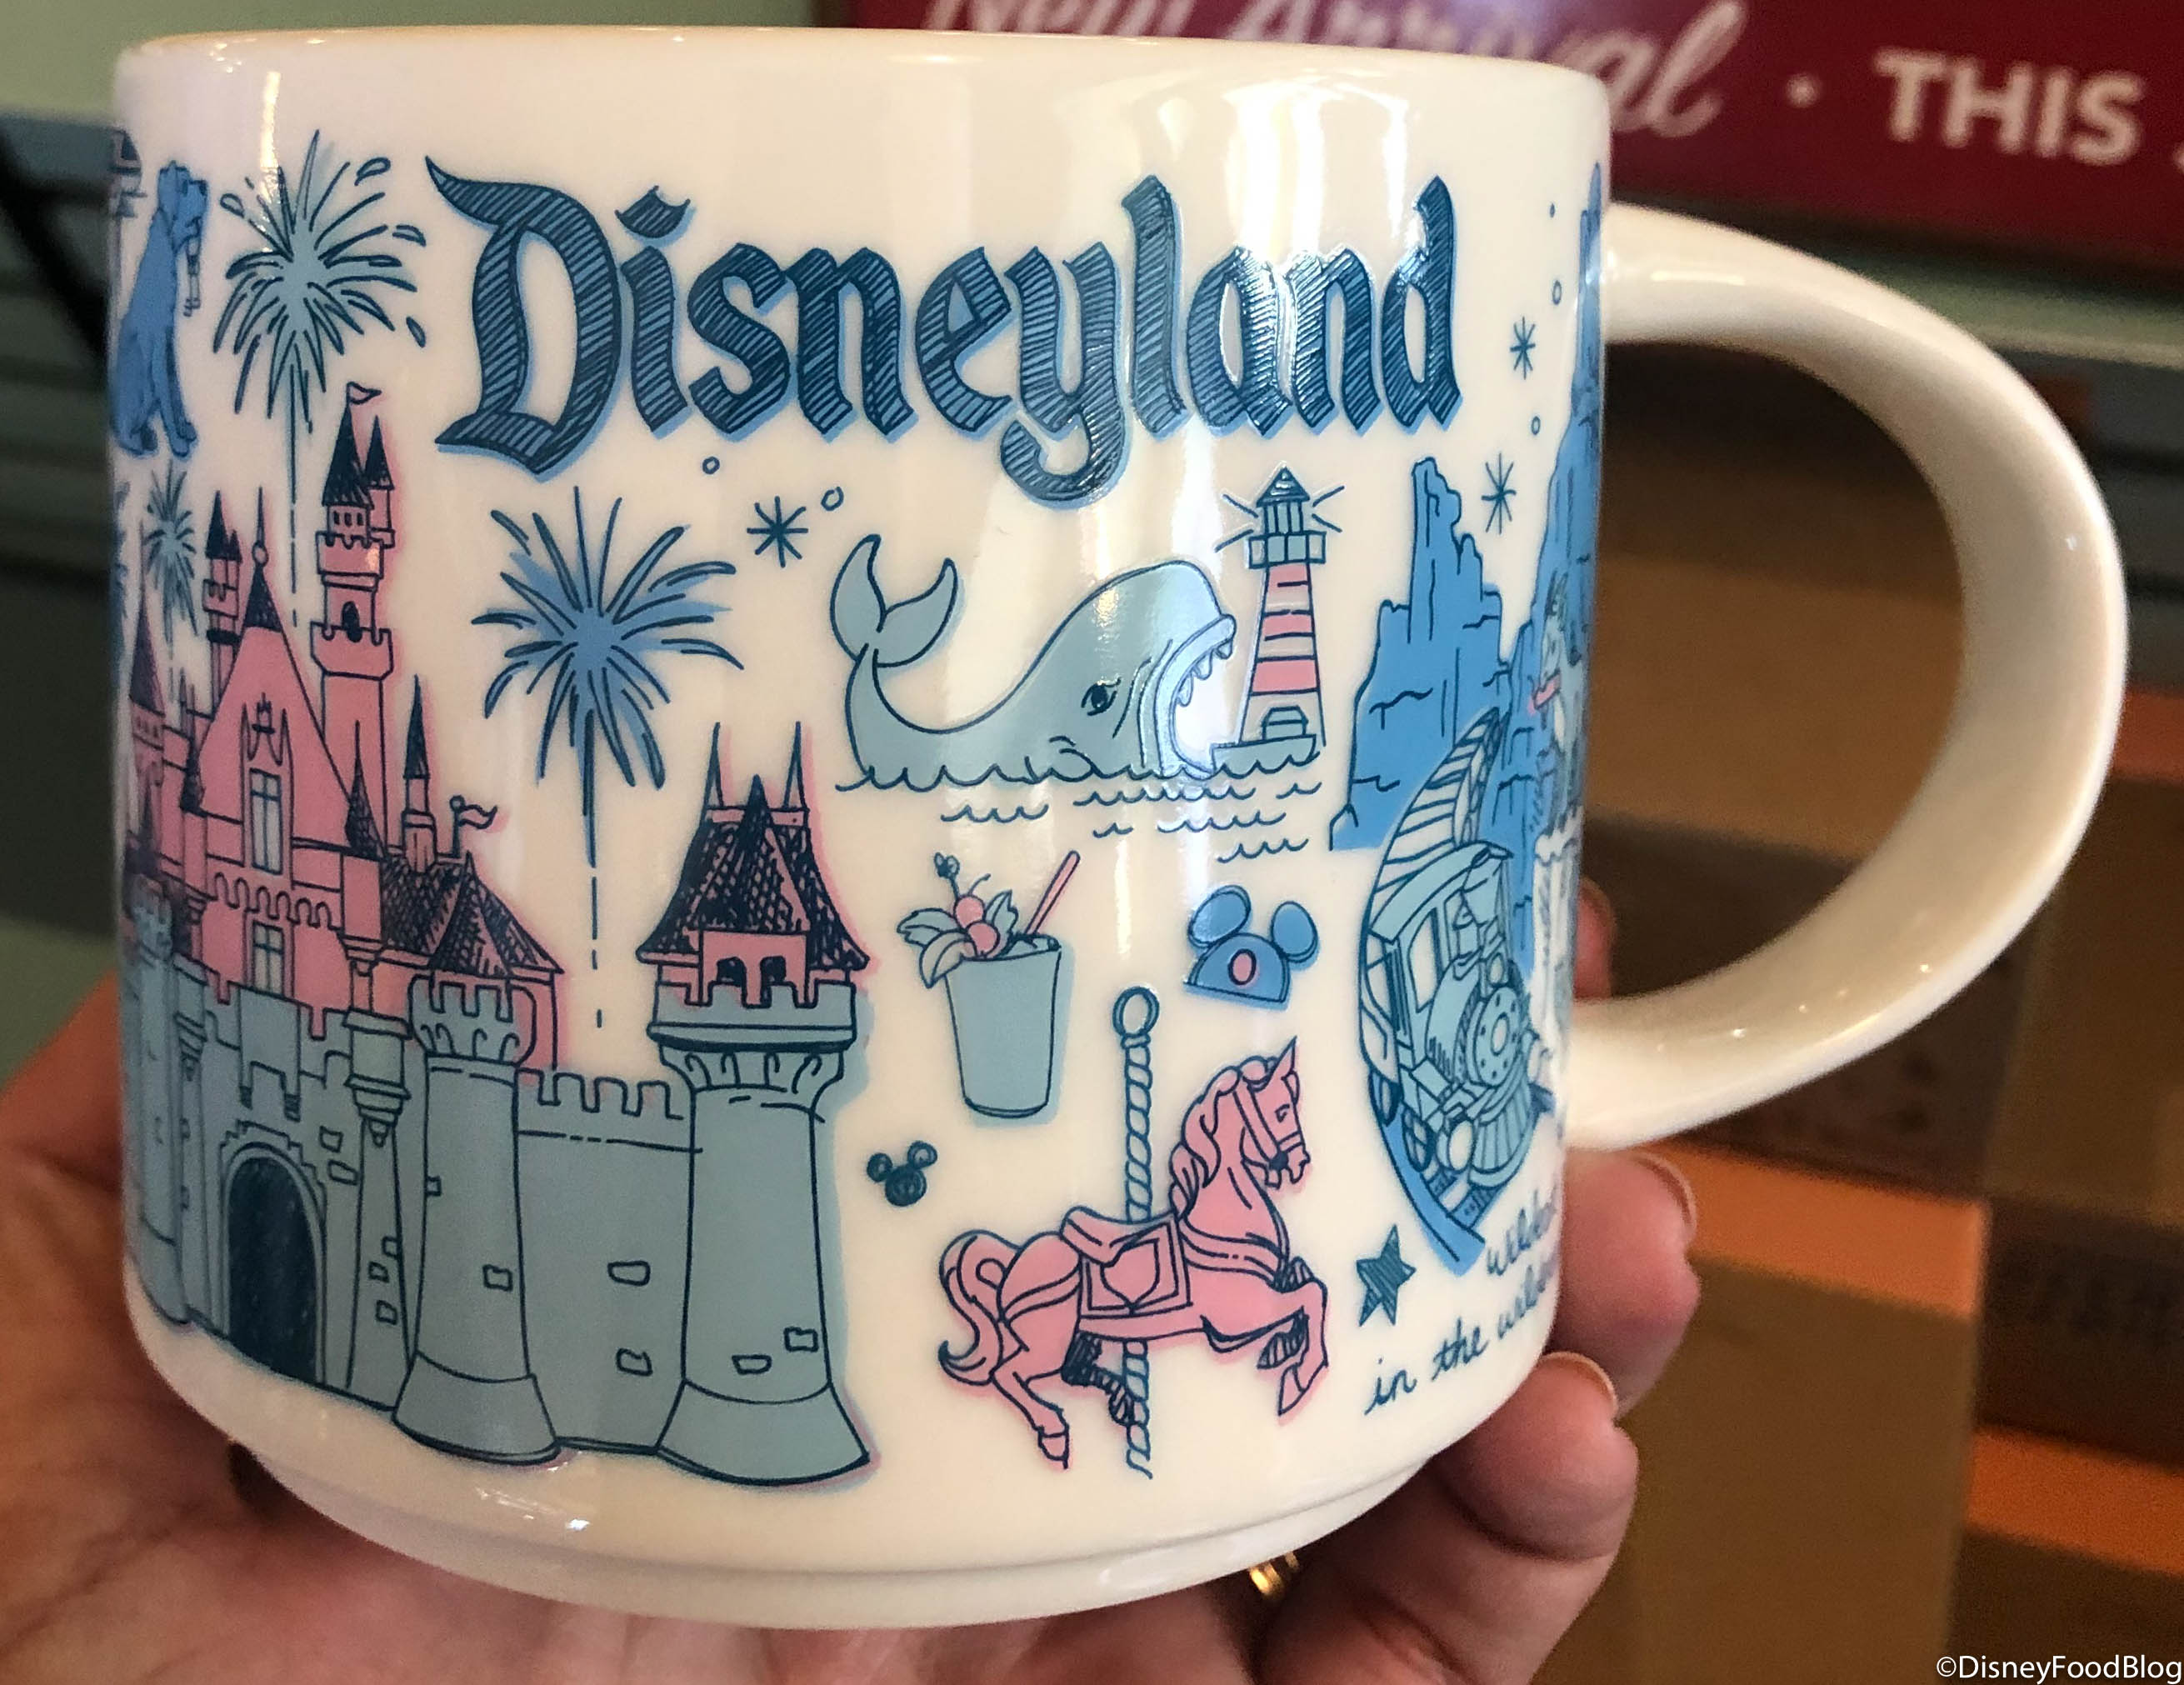 New The Disneyland Starbucks Been There Series Mug Is The Best The Disney Food Blog